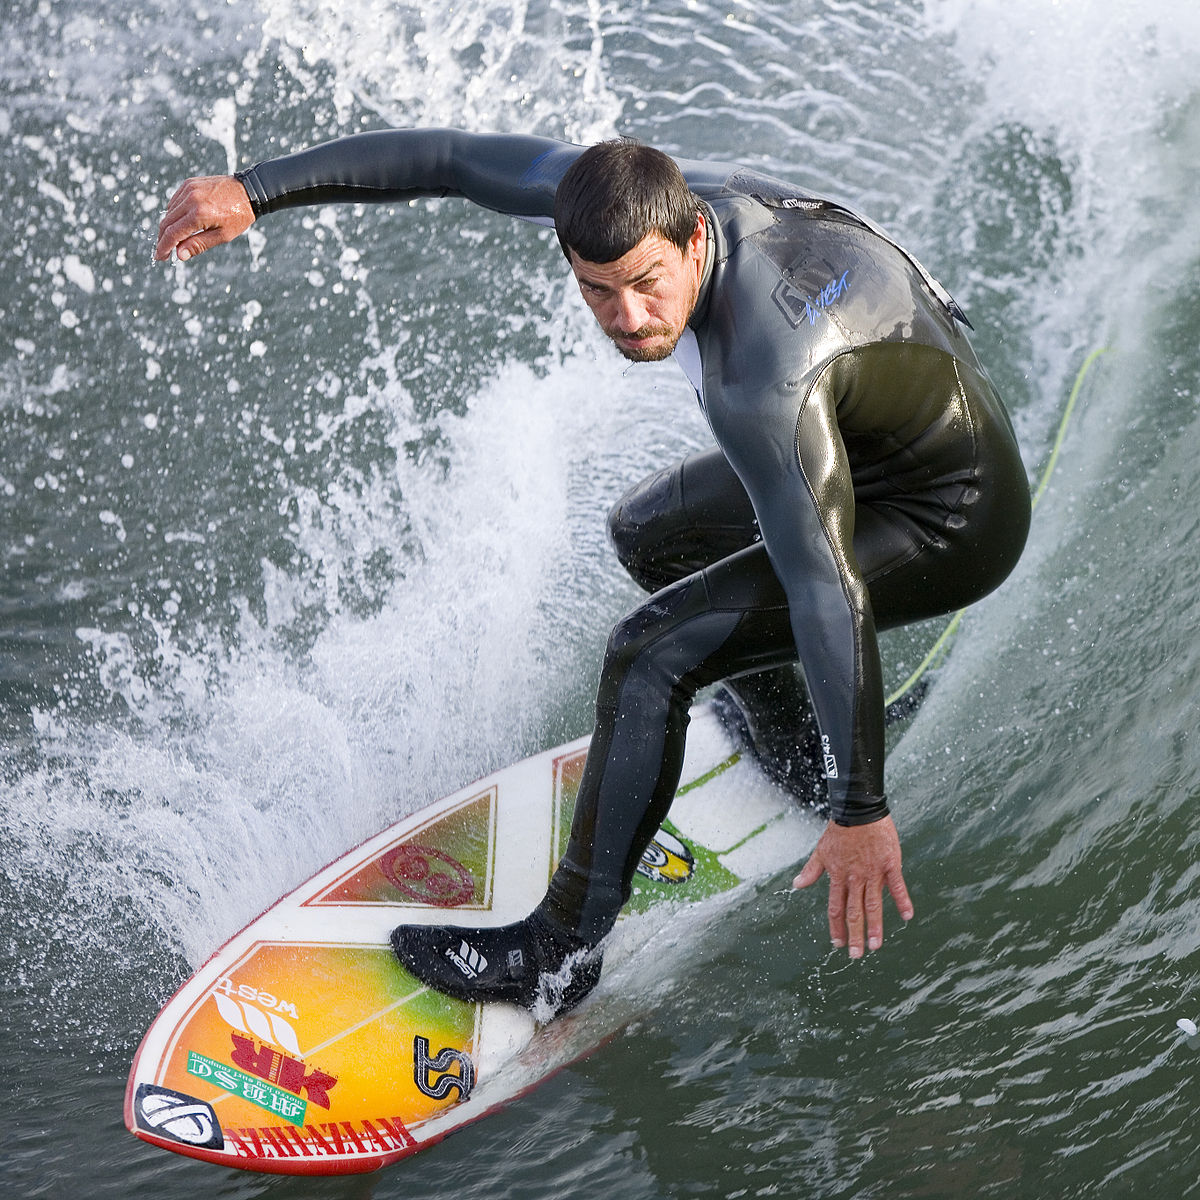 Surfing Wikipedia - The 7 best beaches for winter surfing